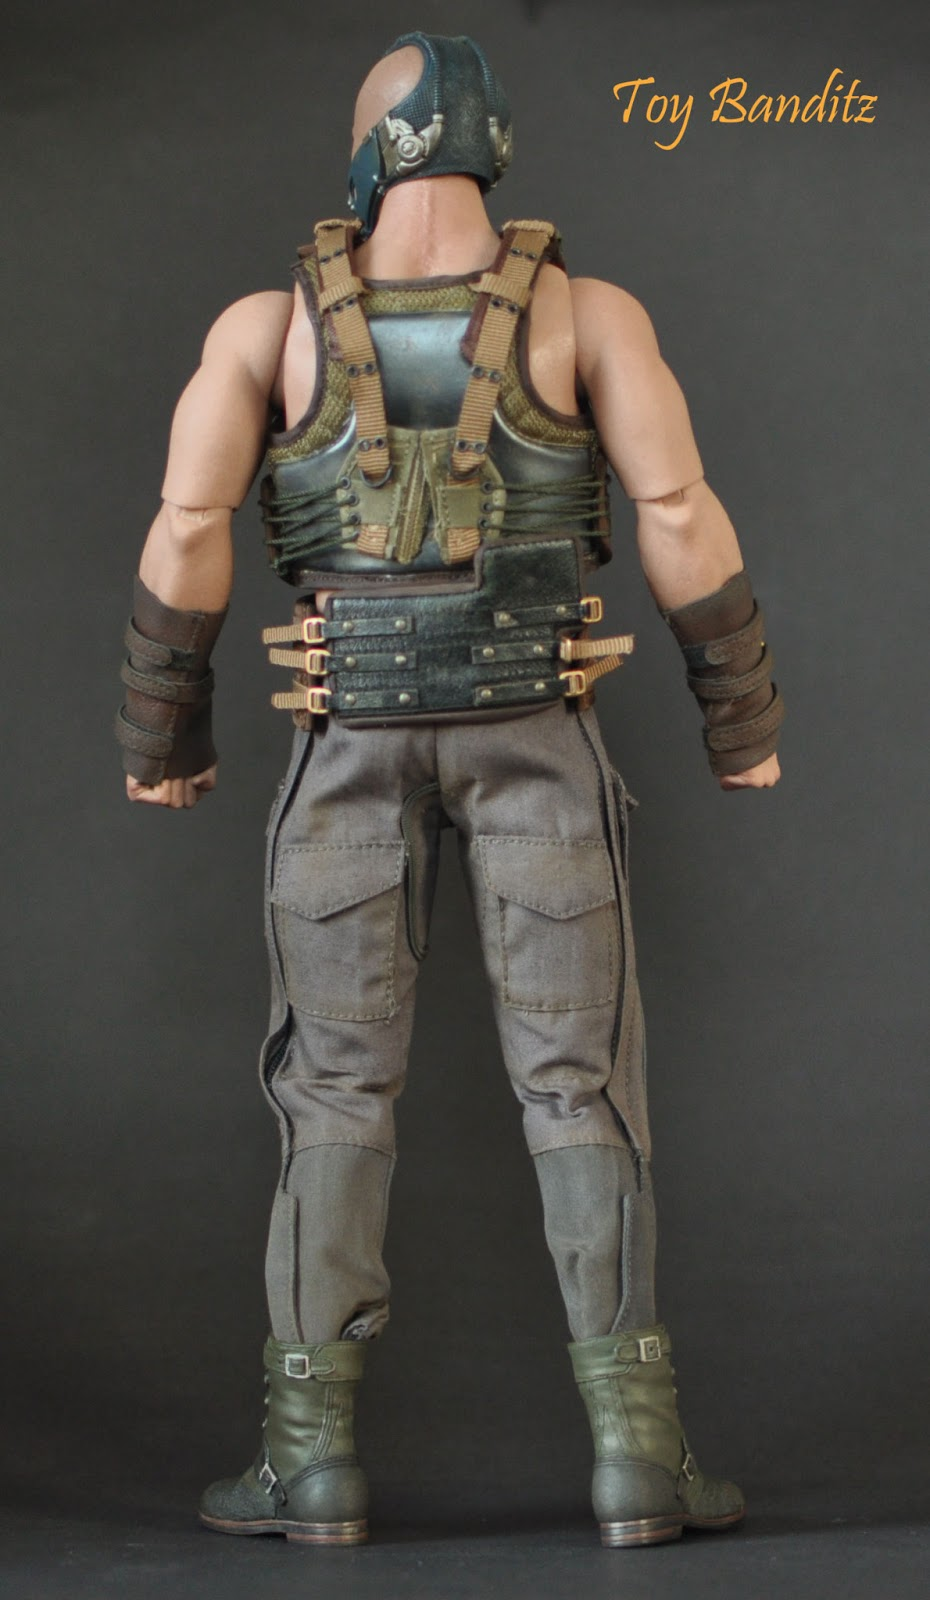 Toy Story Toys In Movie Toy Banditz Bane The Dark Knight Rises By Hot Toys